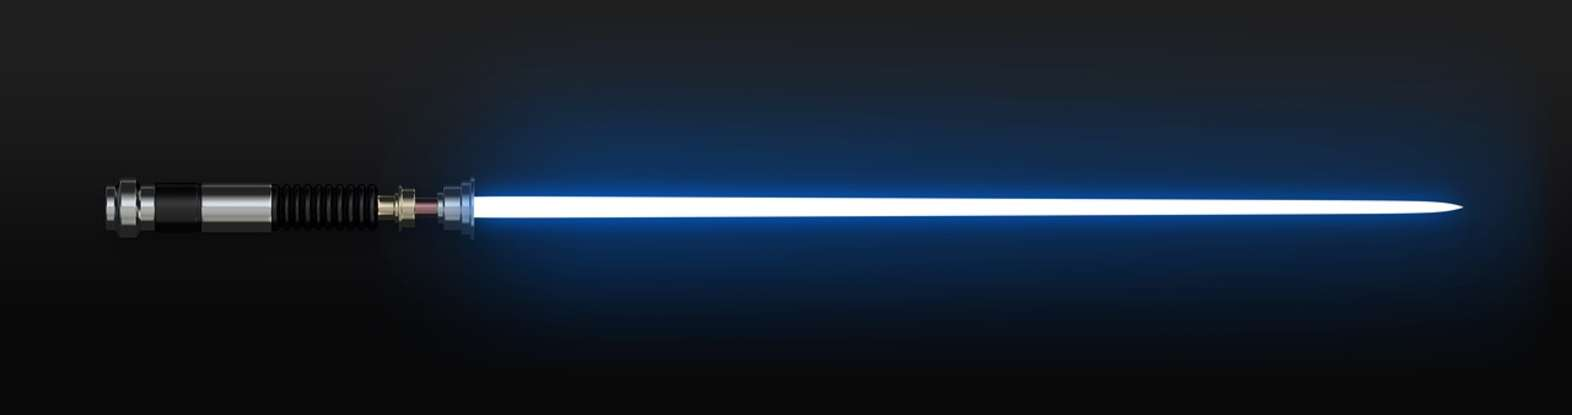 30. How many characters ignite a lightsaber in <em>Rogue One</em>?